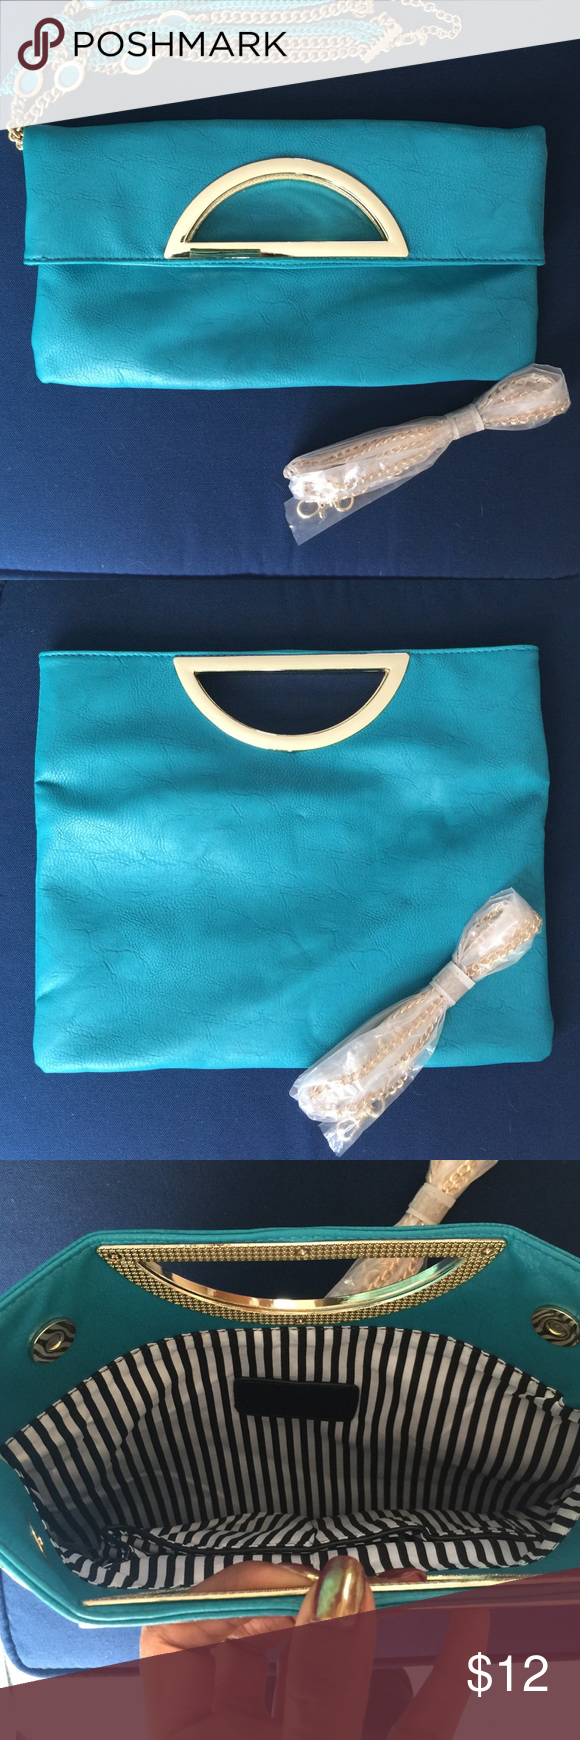 Charming Charlie Clutch Clutch bag expands into a larder bag. Comes with gold tone chain shoulder strap. Charming Charlie  Bags Clutches & Wristlets